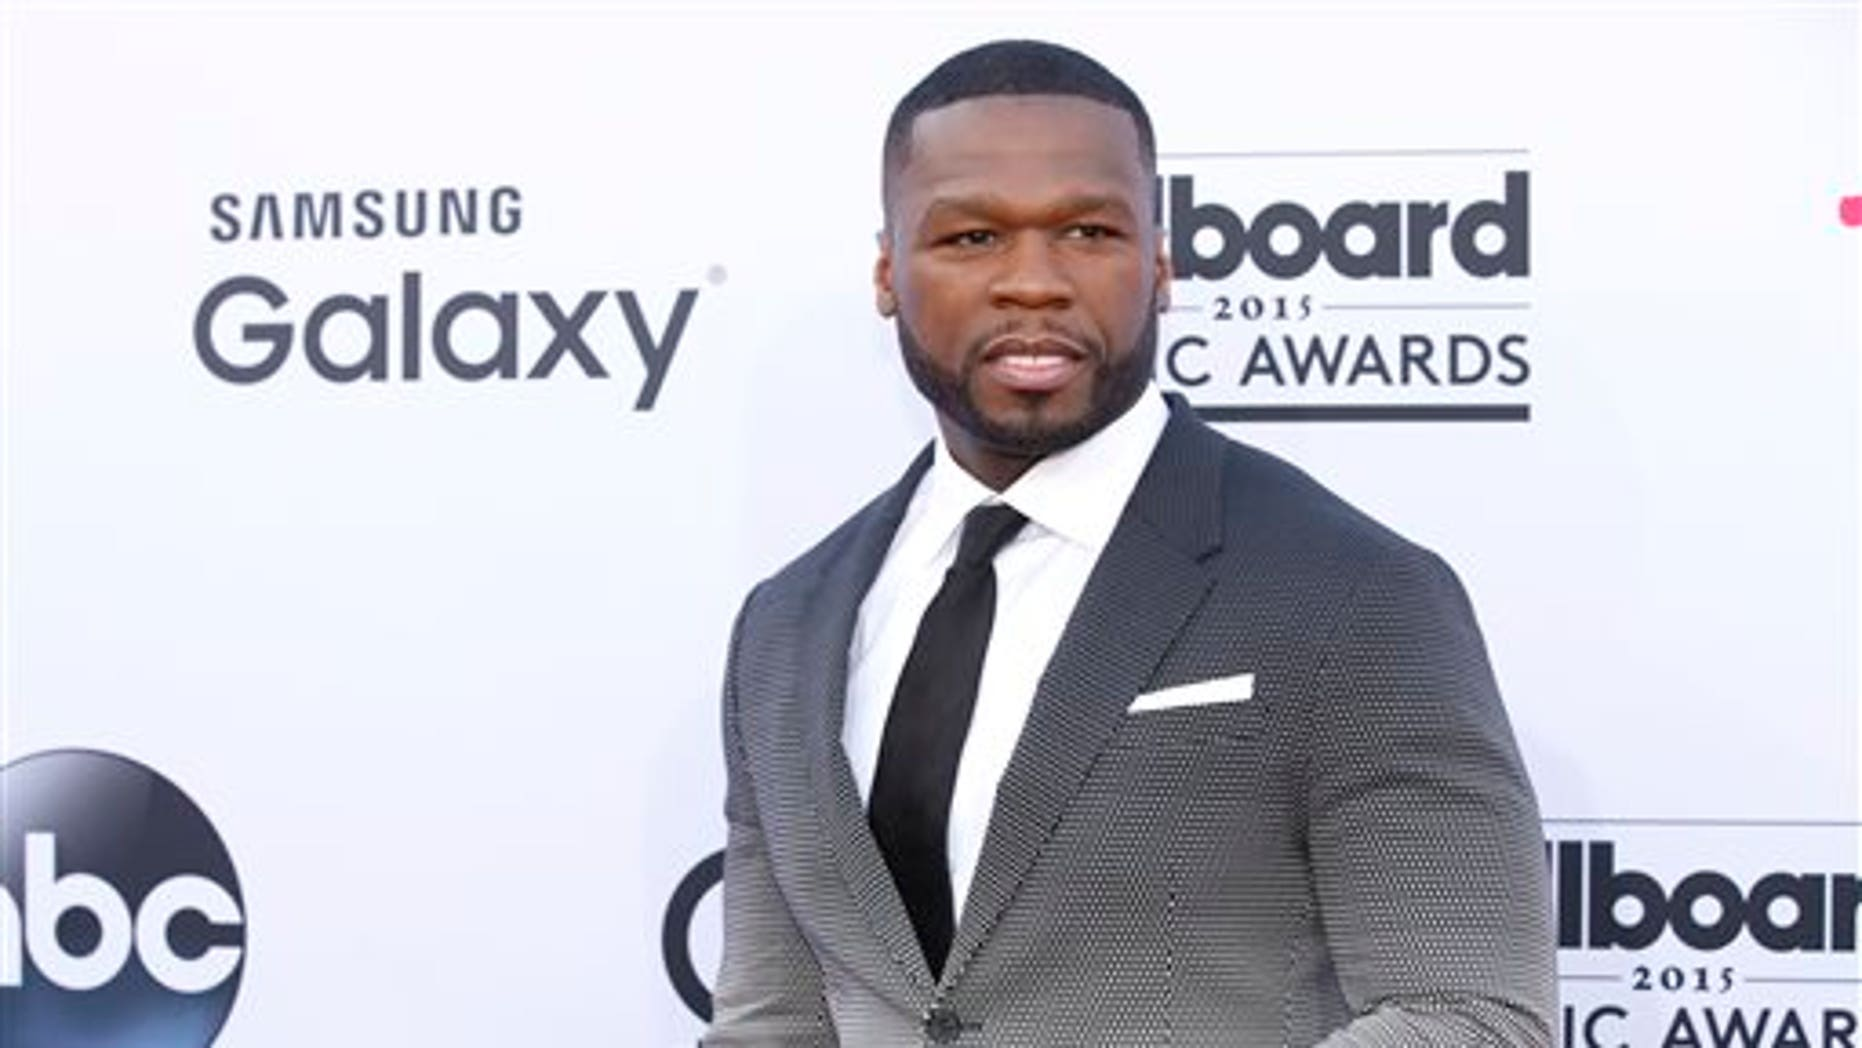 50 Cent arrives at the Billboard Music Awards at the MGM Grand Garden Arena in Las Vegas on May 17, 2015. (Photo by Eric Jamison/Invision/AP, File)